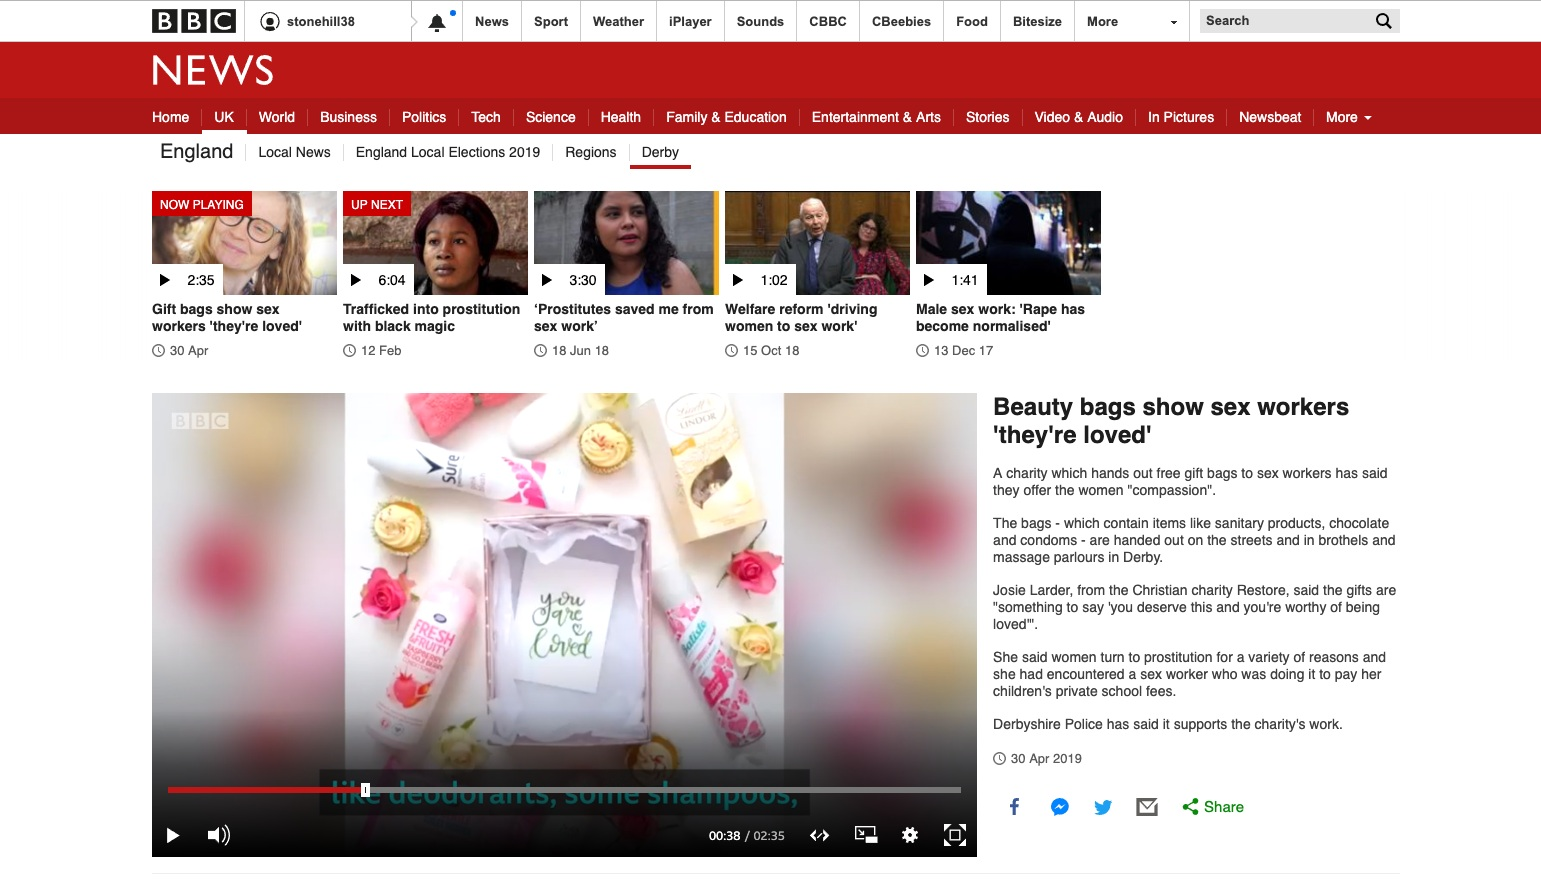 Restore+Derby+BBC+News+Stop+Motion+Beauty+Bag